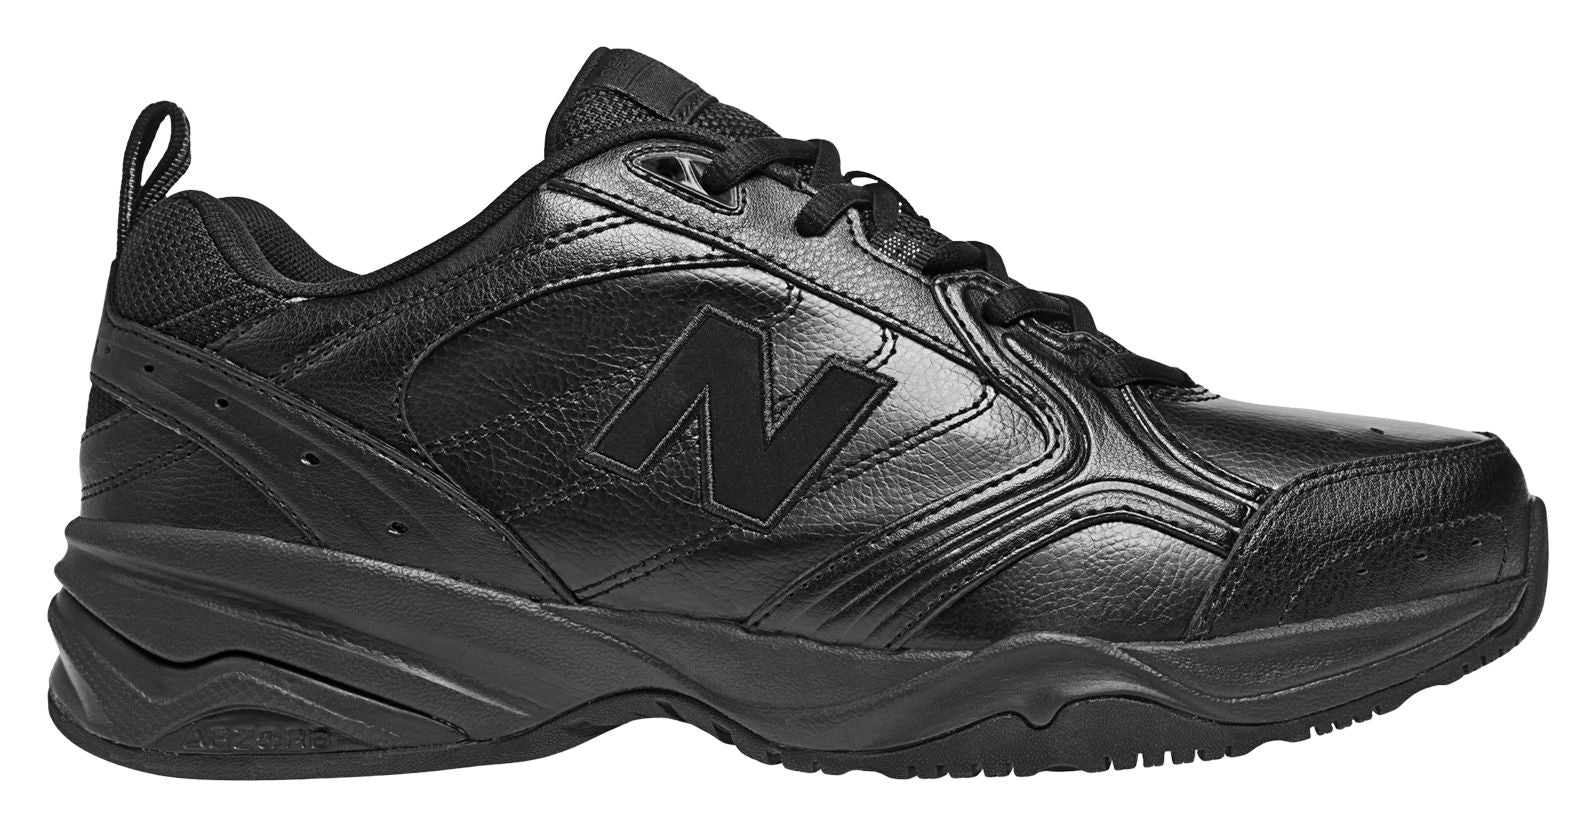 Men's Cross Trainer - Black by New Balance - Ponseti's Shoes